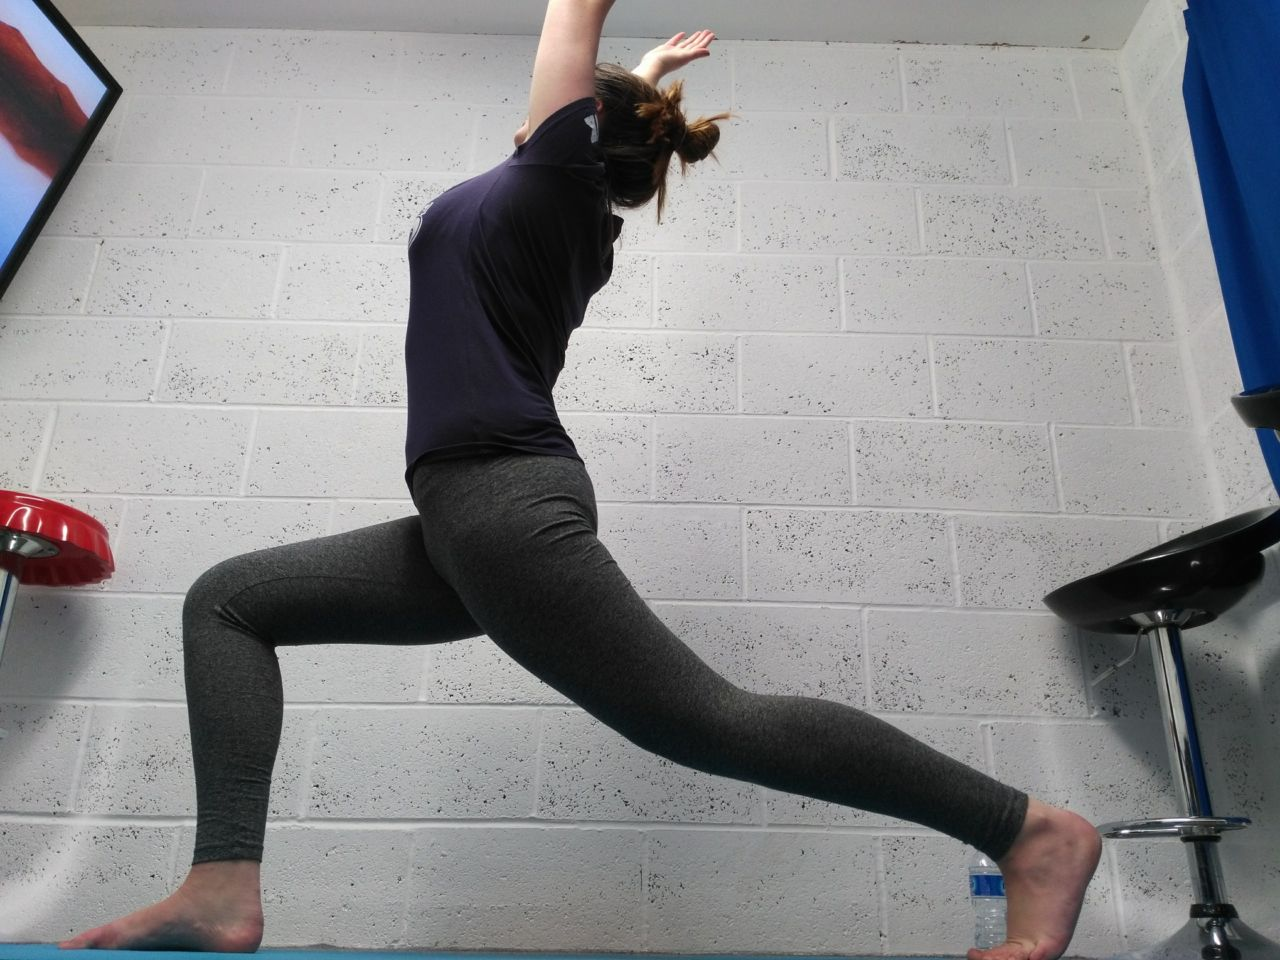 Hands free yoga poses